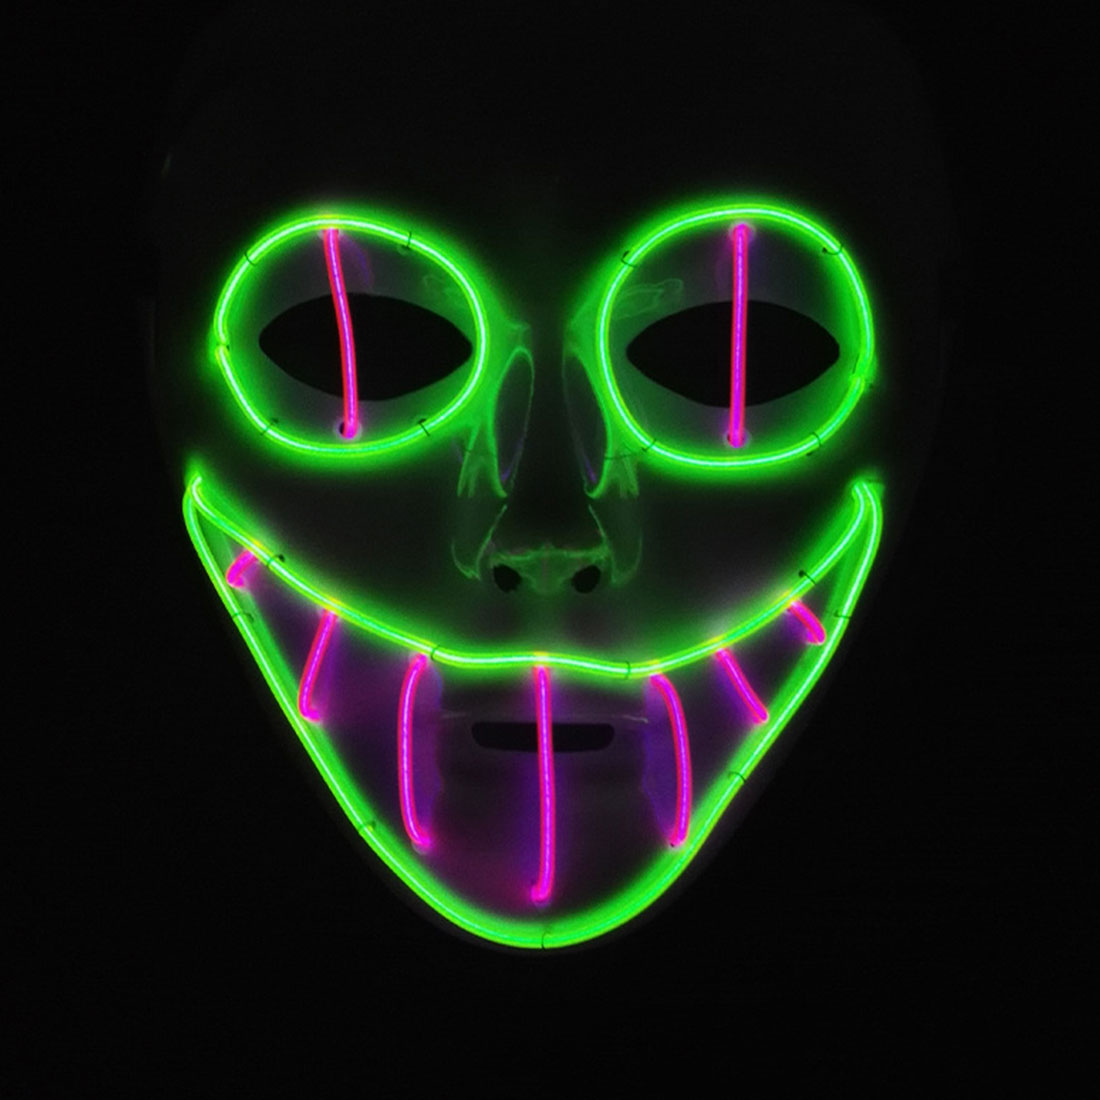 Halloween Maske LED Licht Up Maske Die Purge Wahl Jahr Große Festival Cosplay Kostüm Liefert Party Masken Glow In Dark 6 form